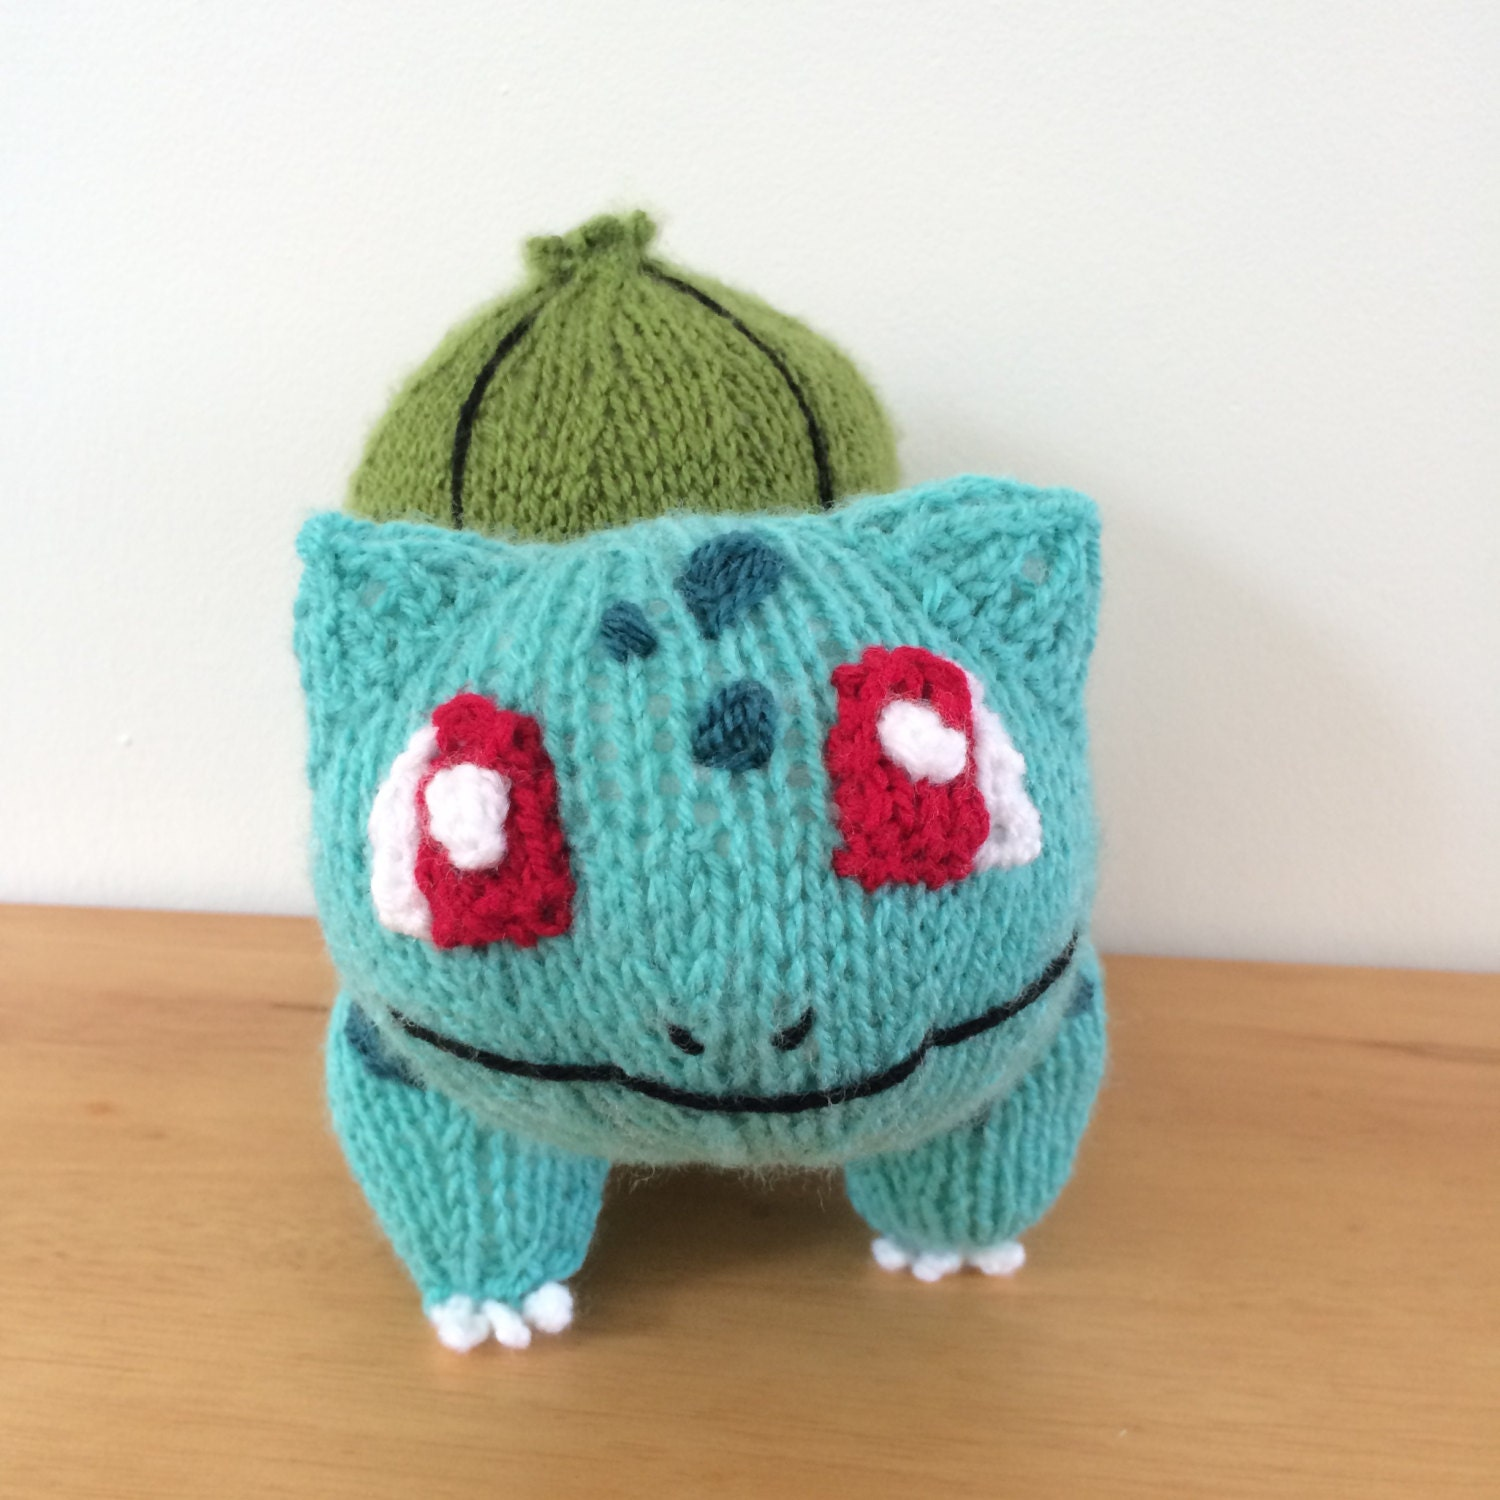 Bulbasaur knitting pattern pokemon pattern knit knitted